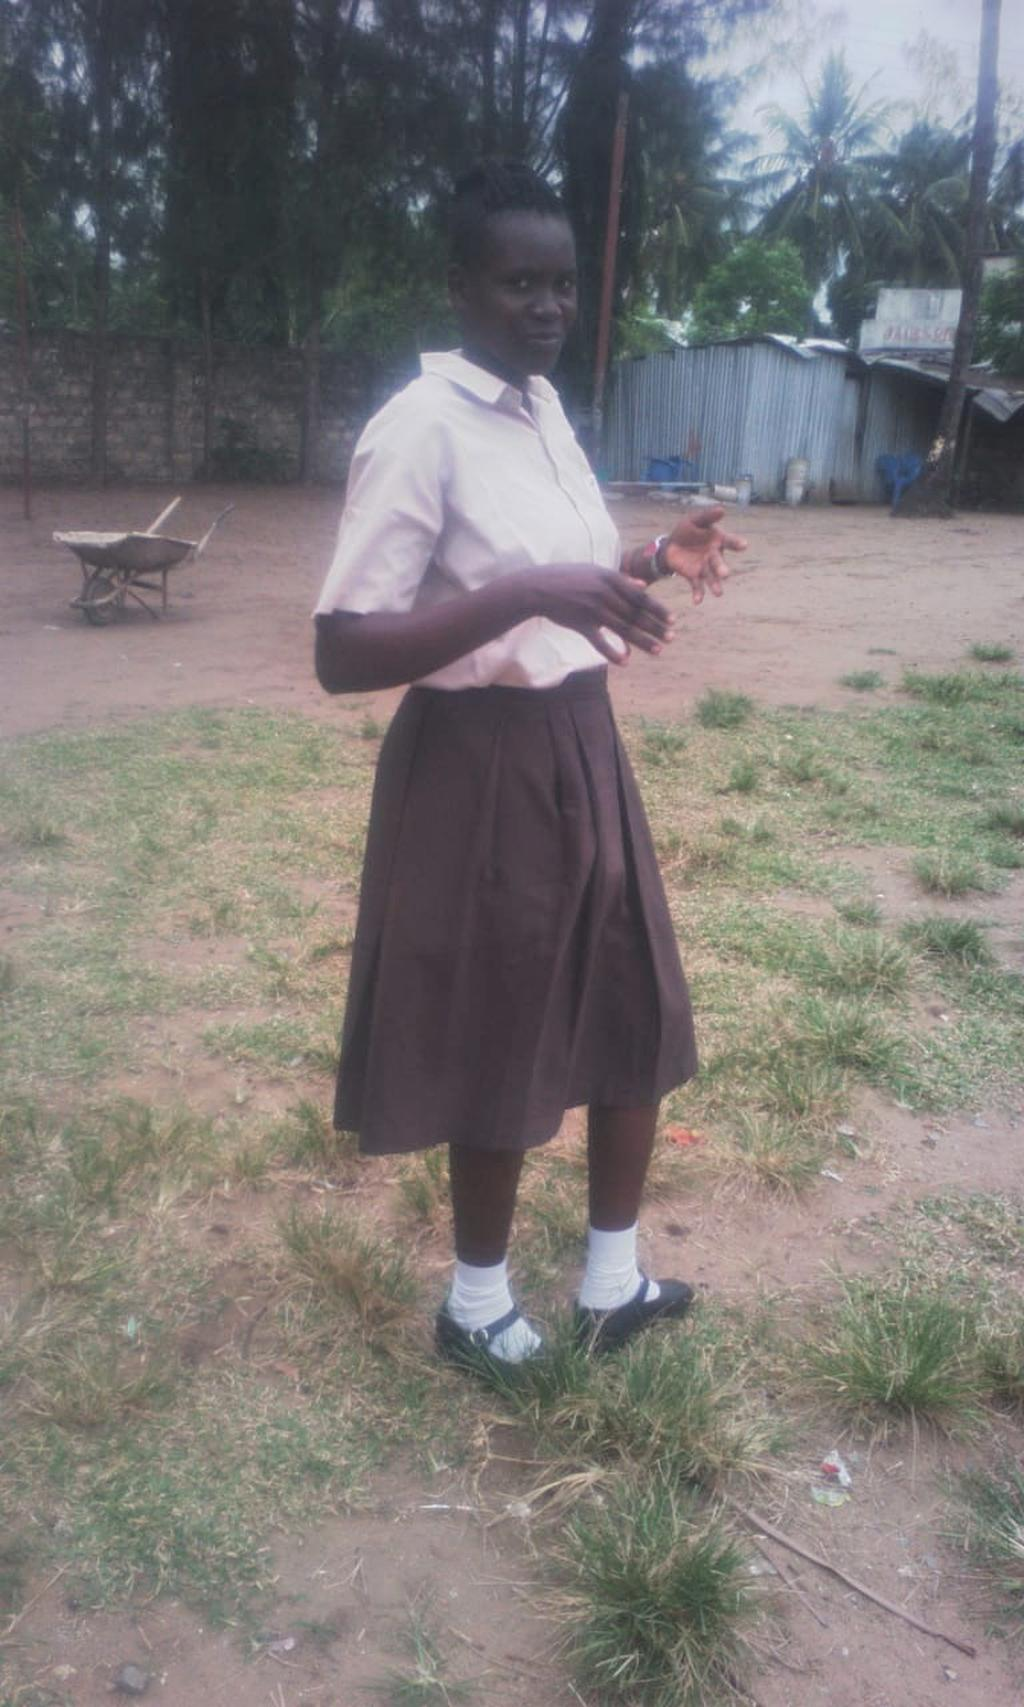 Cynthia recieved a schoolarship from Polio and Children in Need